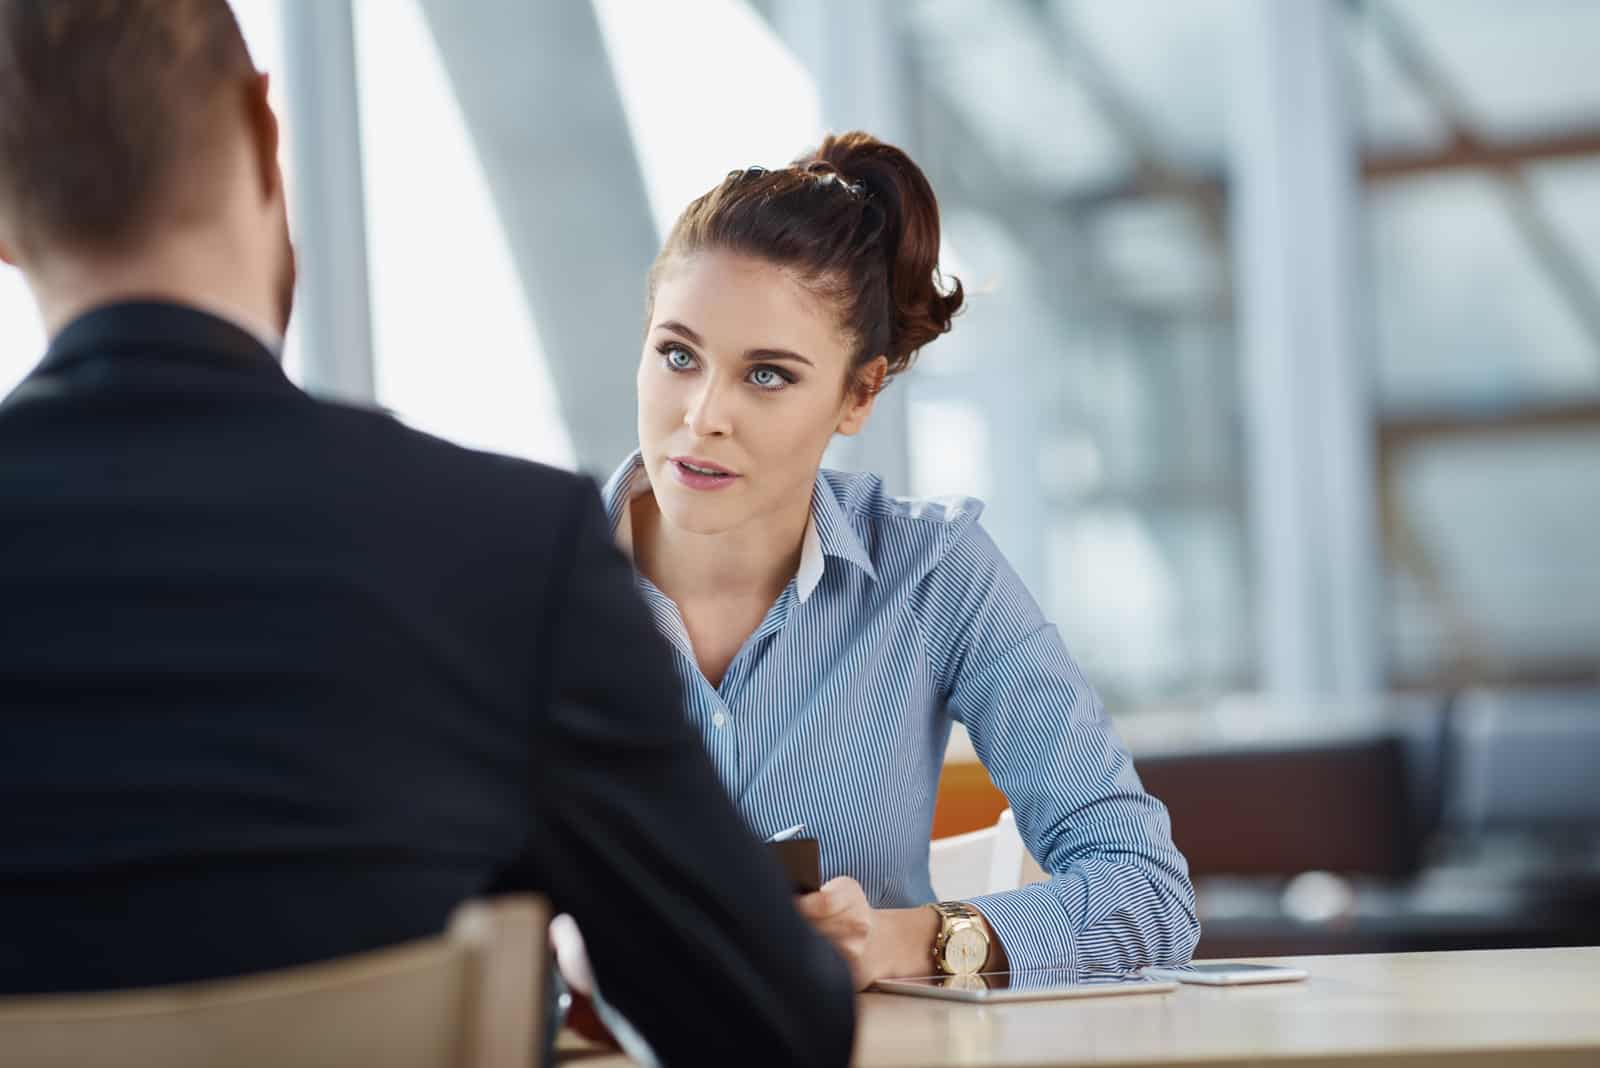 a man and a woman sit at a table and talk